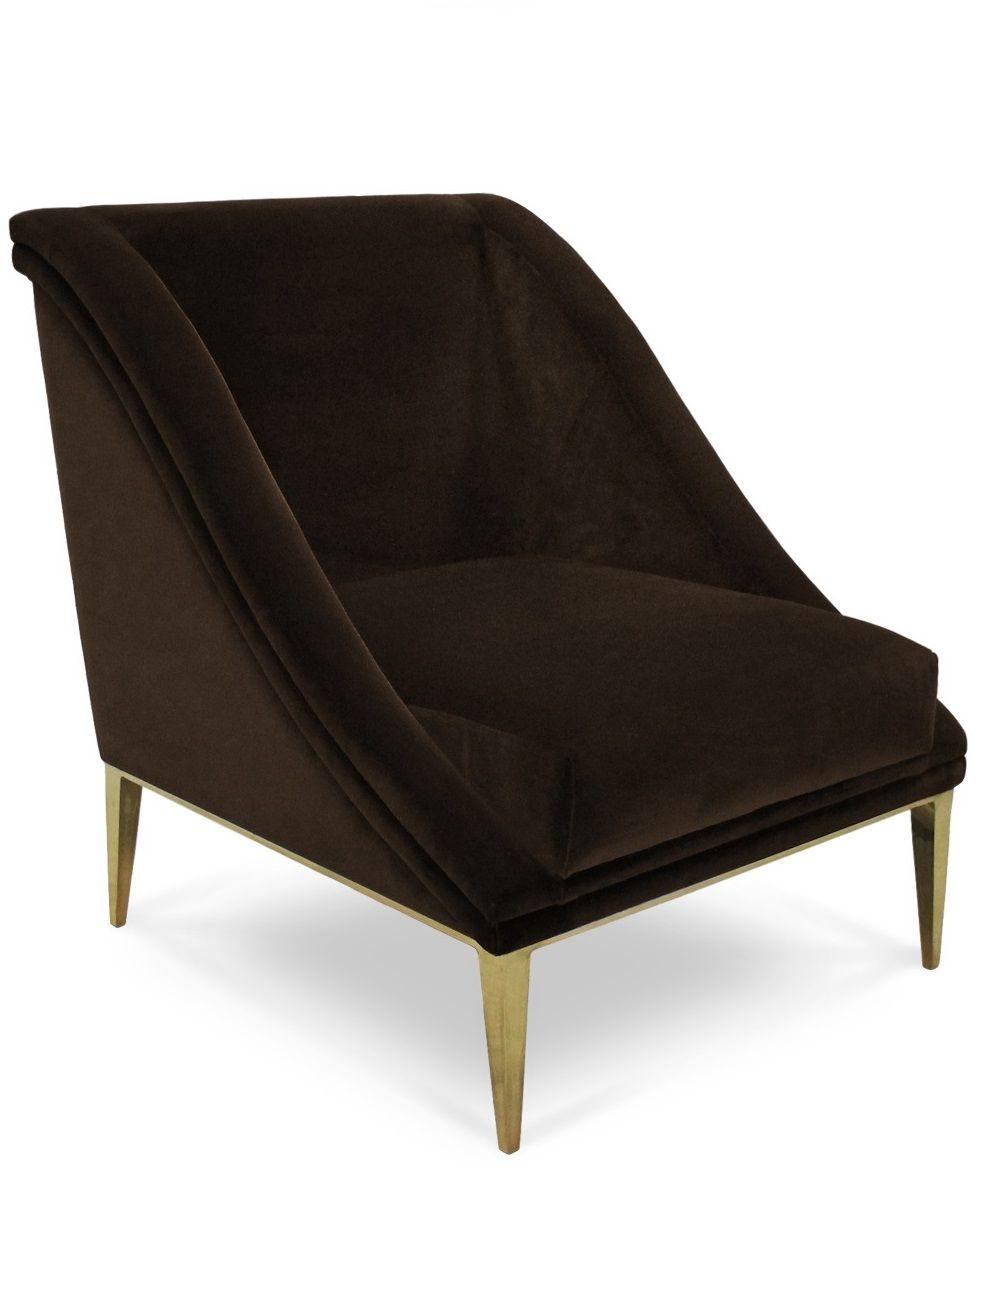 "Armchairs"" Arm Chair, Arm Chairs, Luxury Armchair, Luxury Armchairs With Tate Arm Sofa Chairs (Image 3 of 20)"